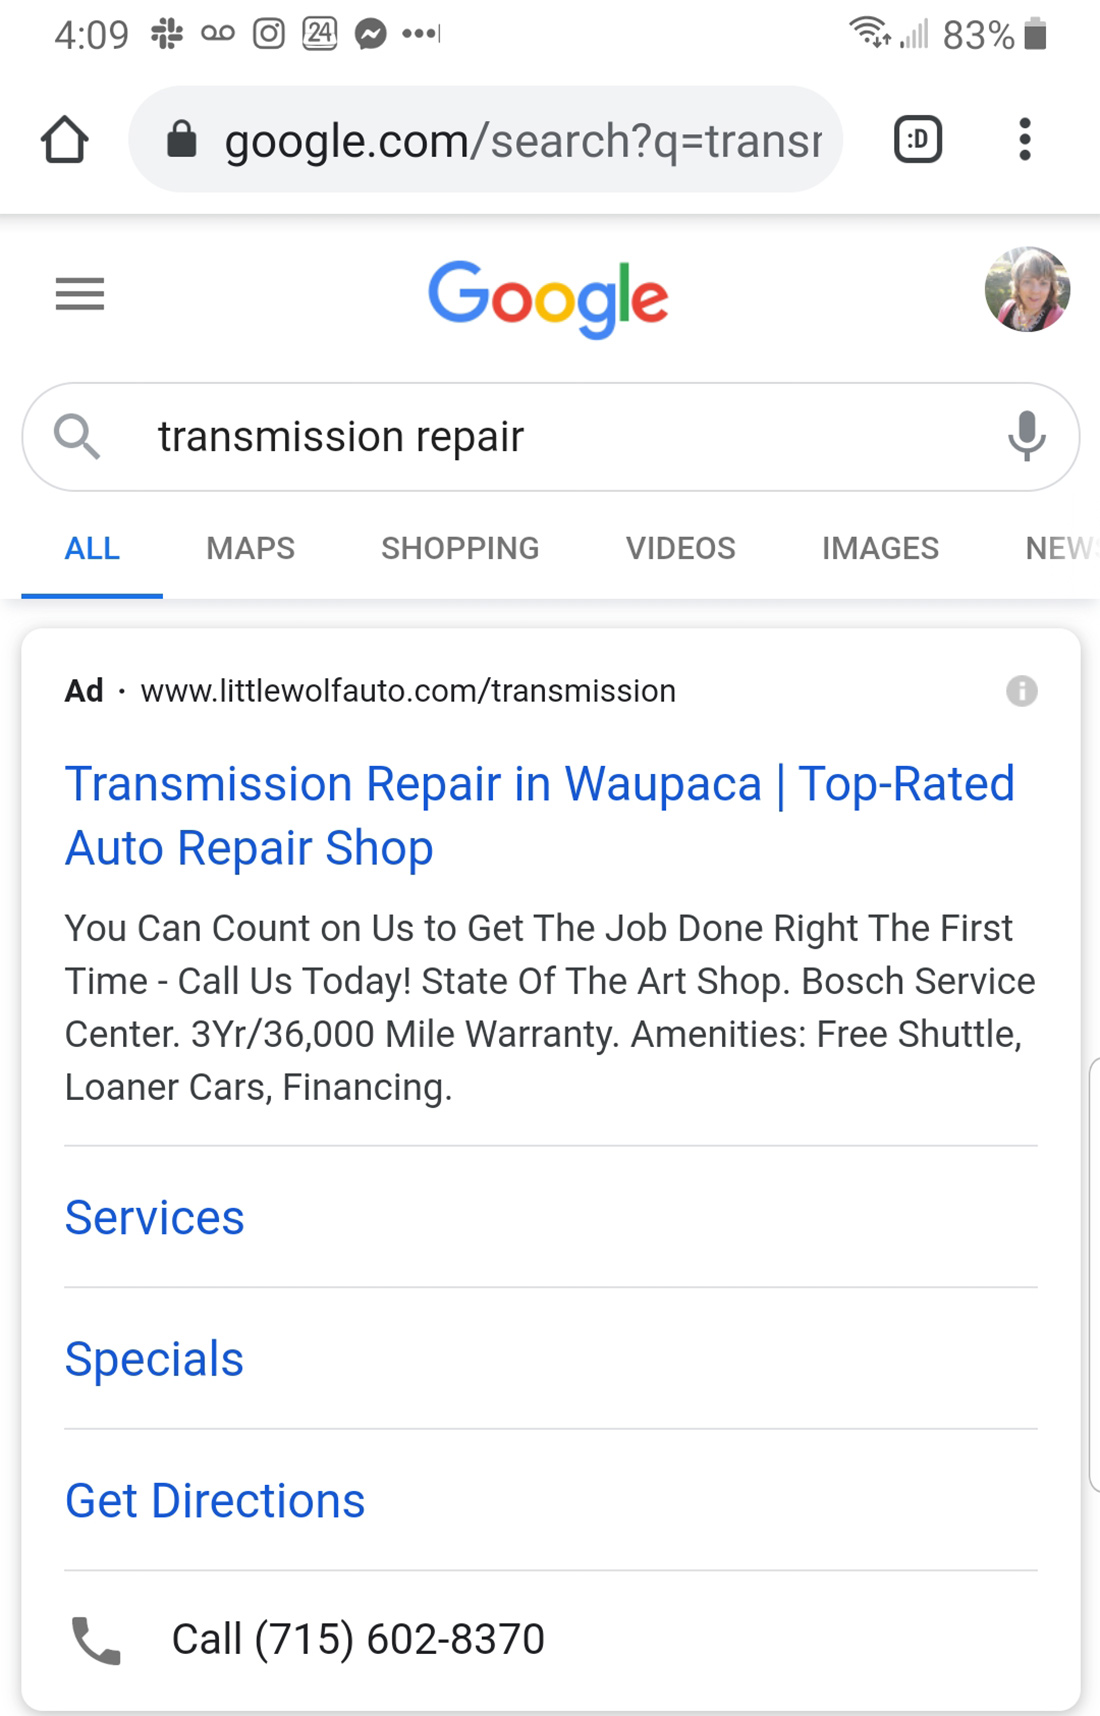 google ads mobile location extension